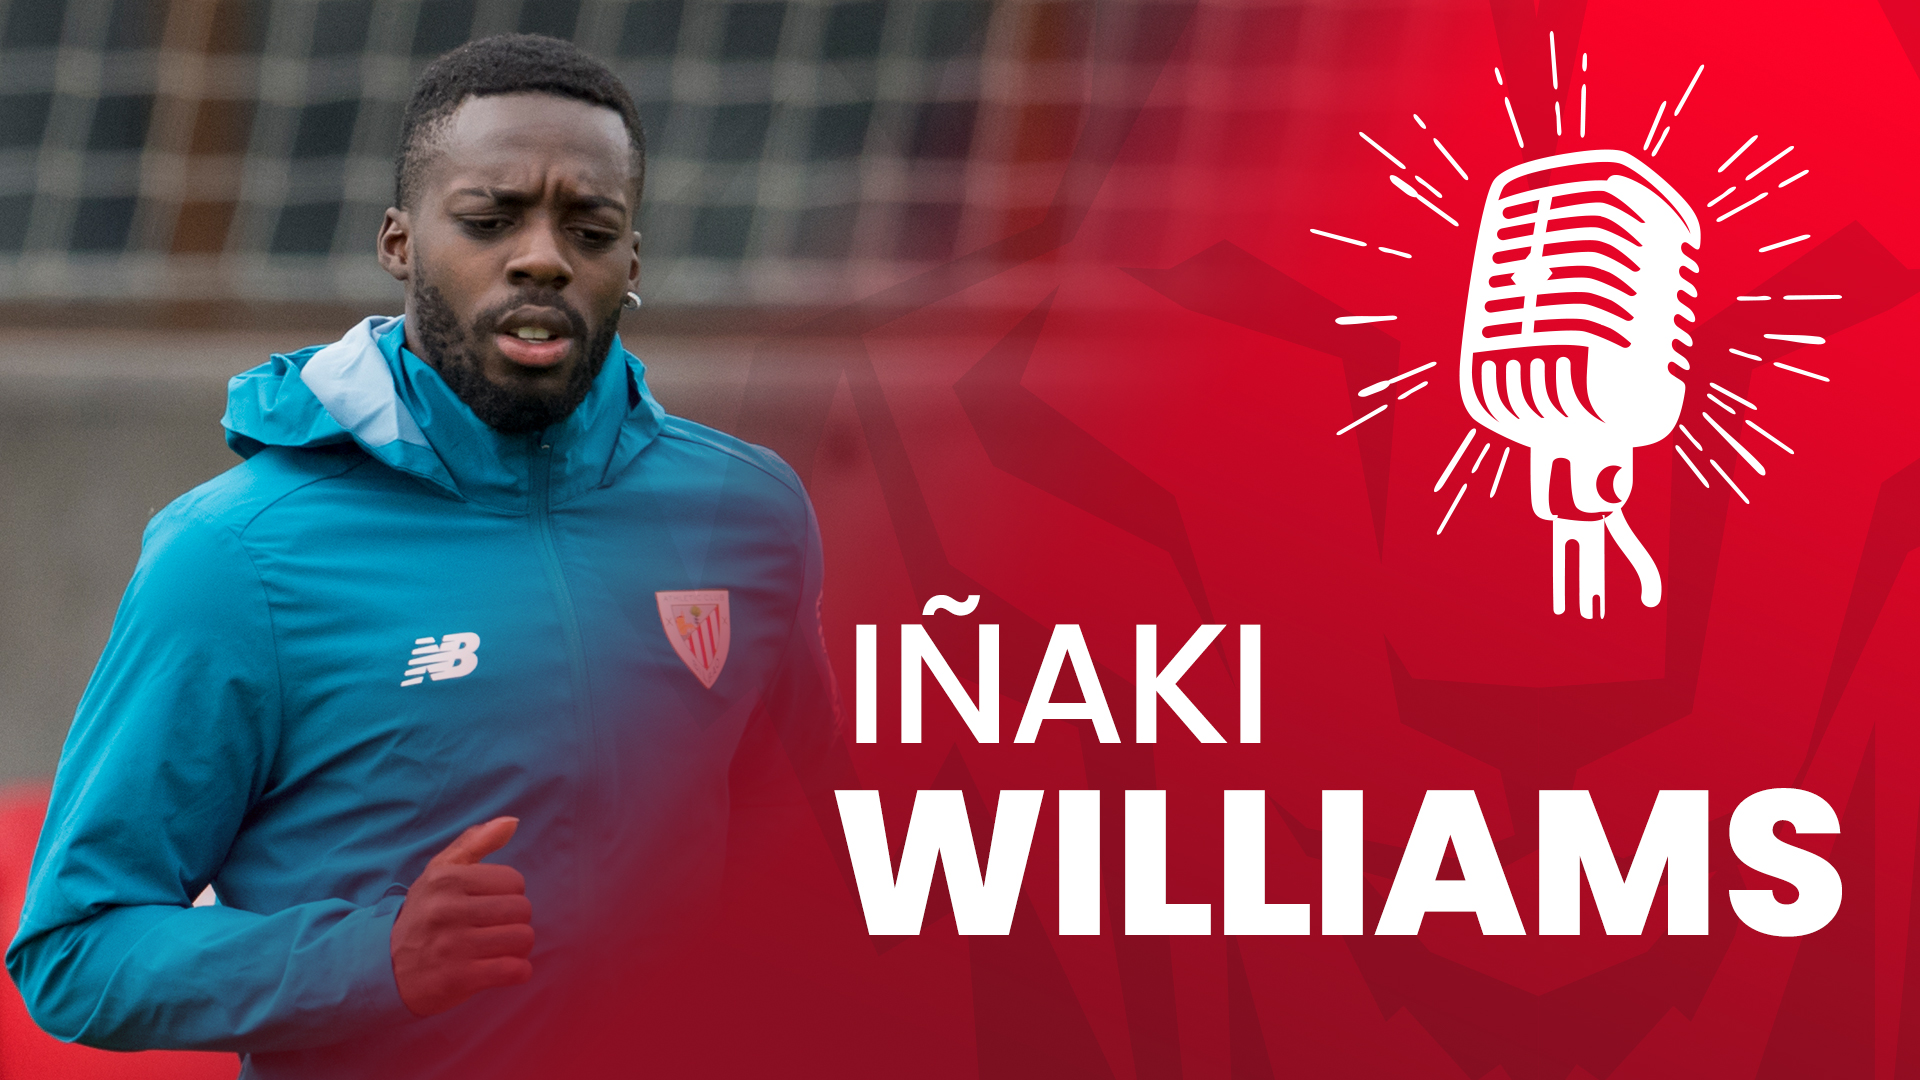 Live: Iñaki Williams press conference